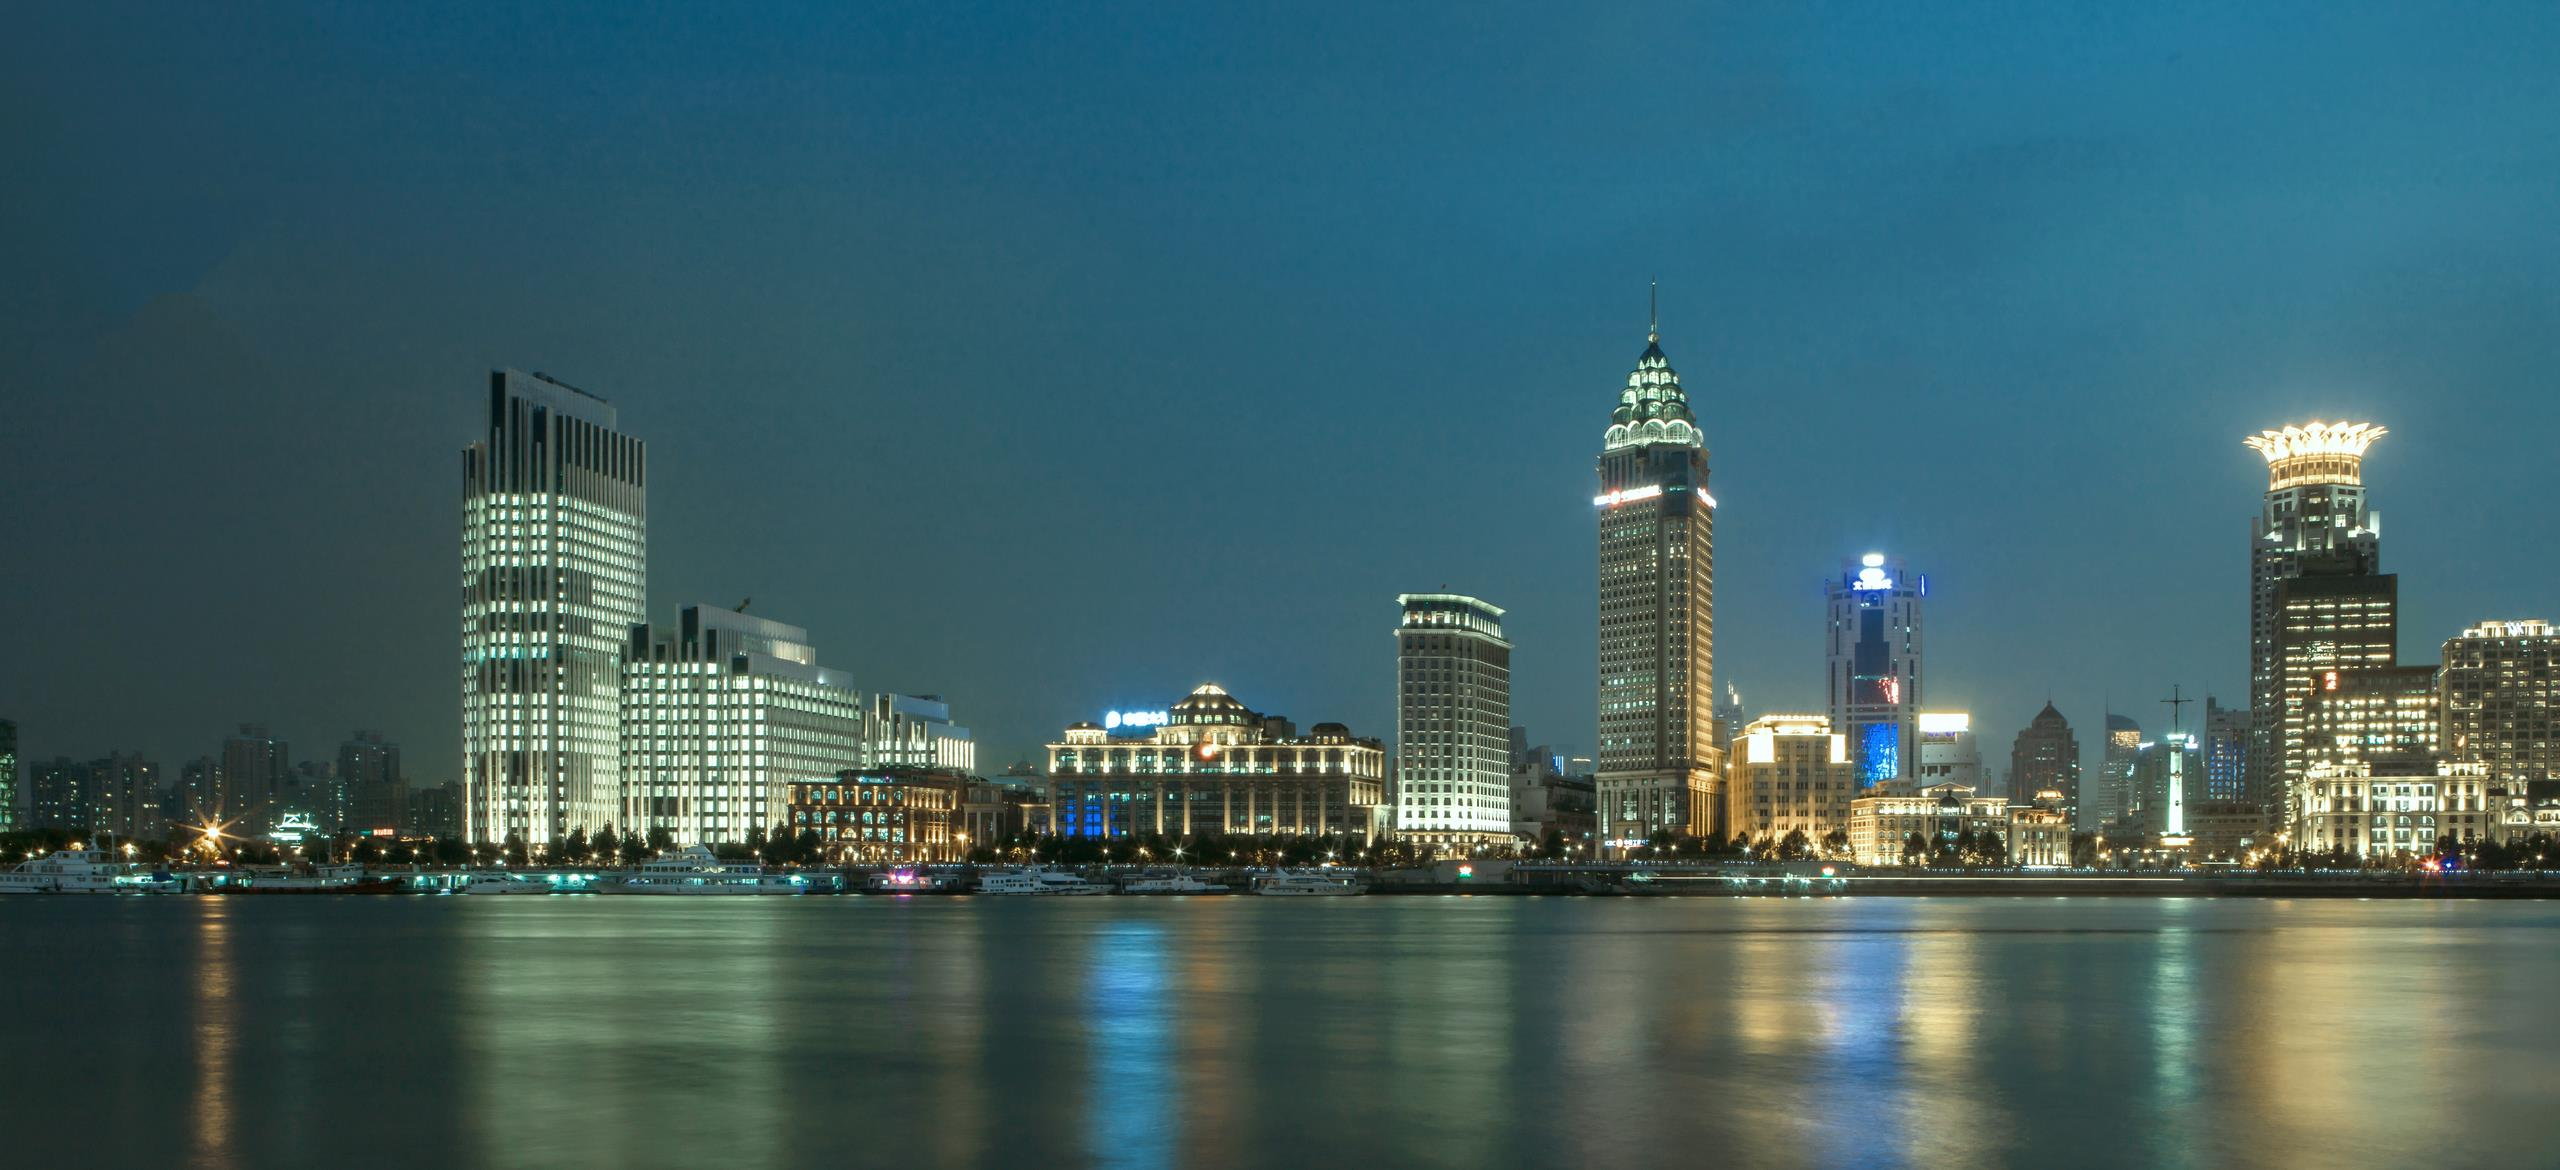 View of the 21st century landmark development on the Bund during the day